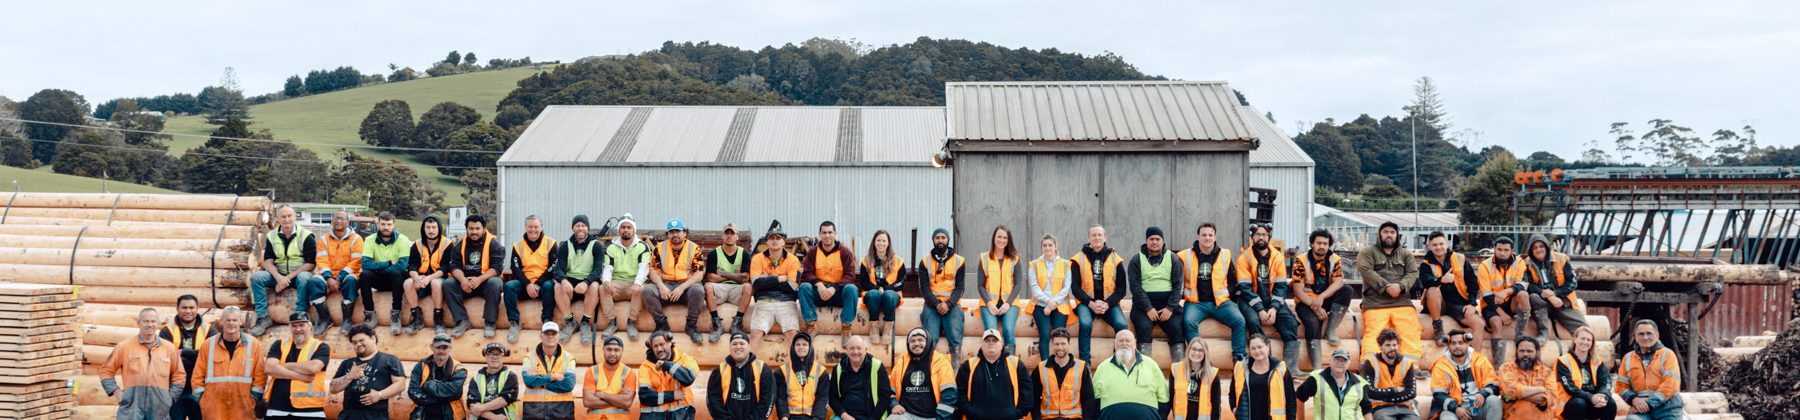 Our People - Header Image